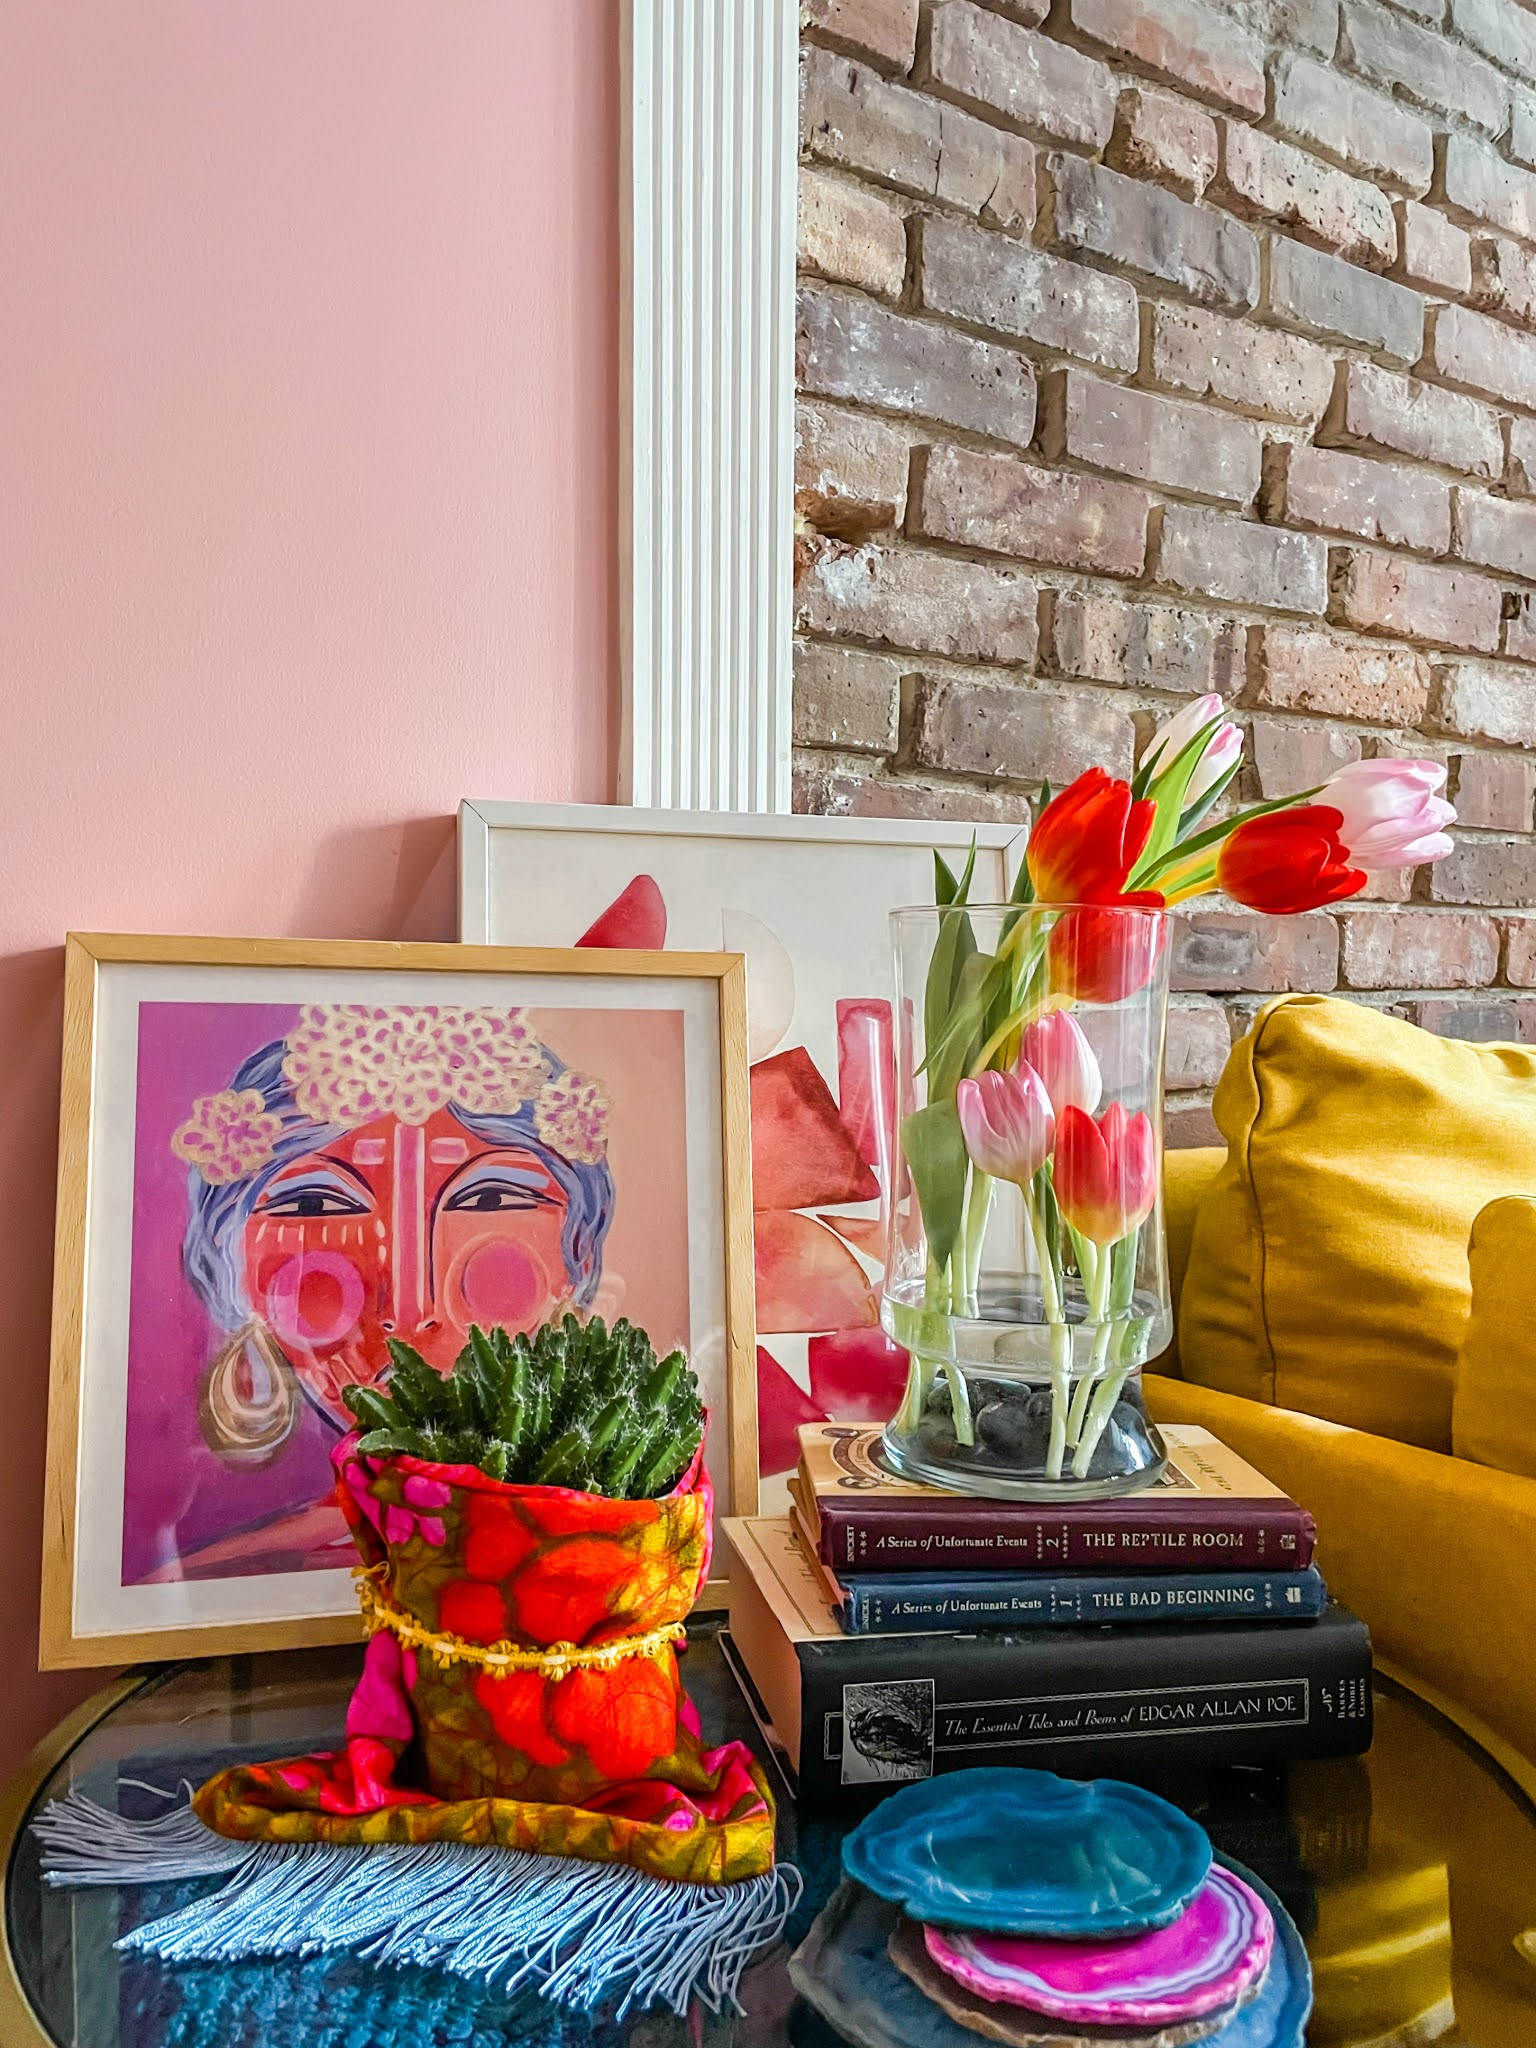 Pink decor // how to add color to your home // pink art work // tulip flower arrangement // side table styling // colorful living room // dragonfruit plant // layered frames // flower arrangements